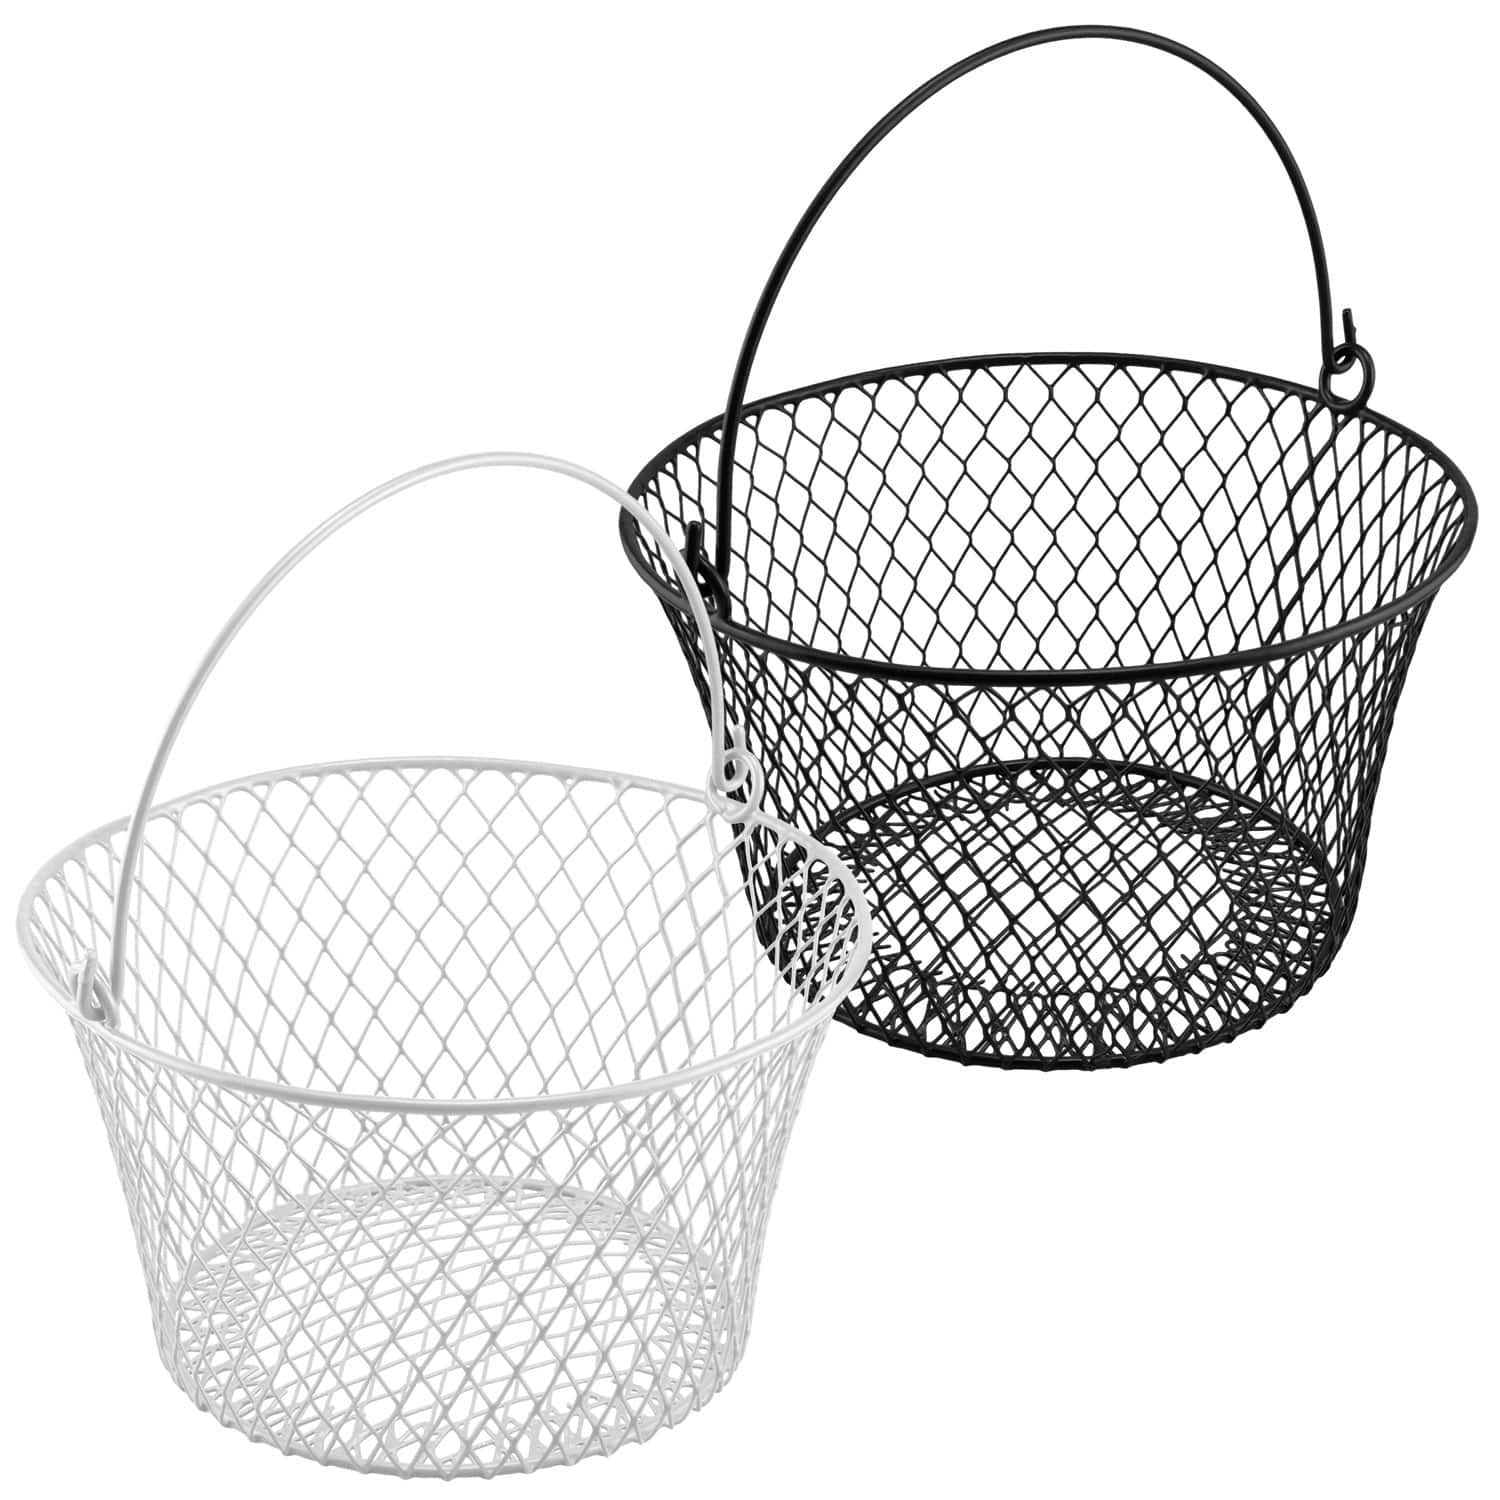 Essentials Round Vinyl Coated Wire Baskets 7 875x4 5 In